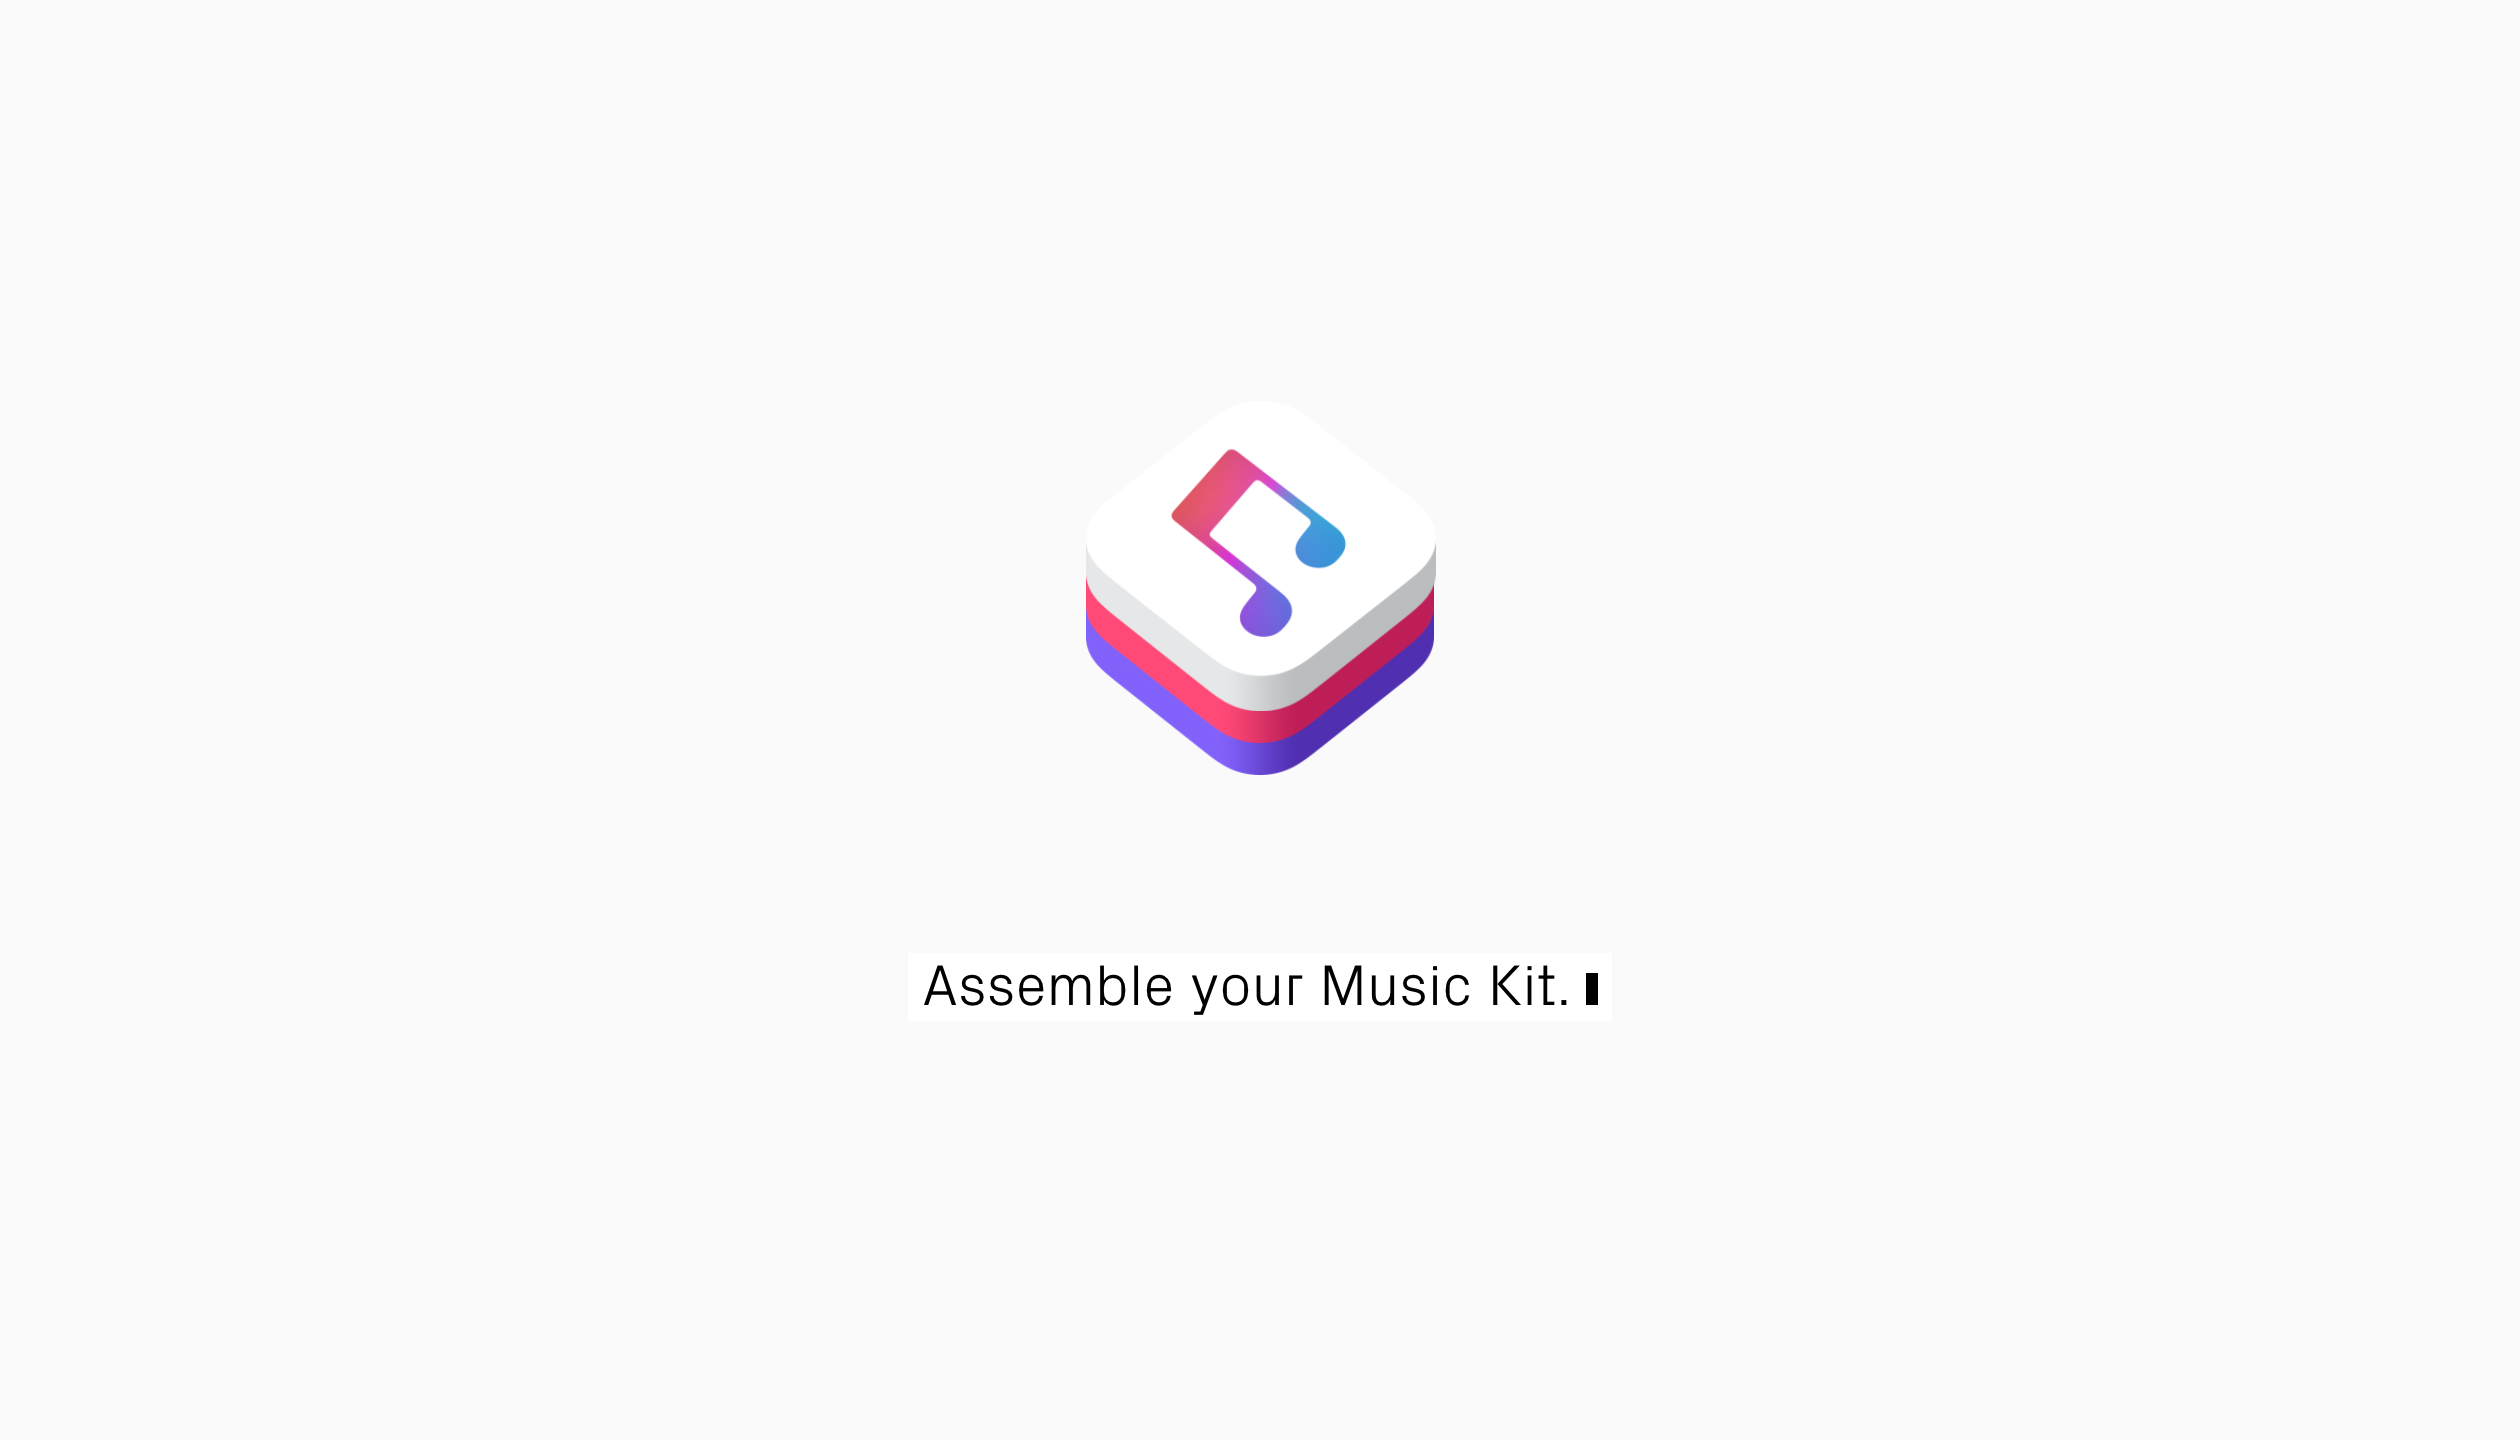 Assemble your Music Kit